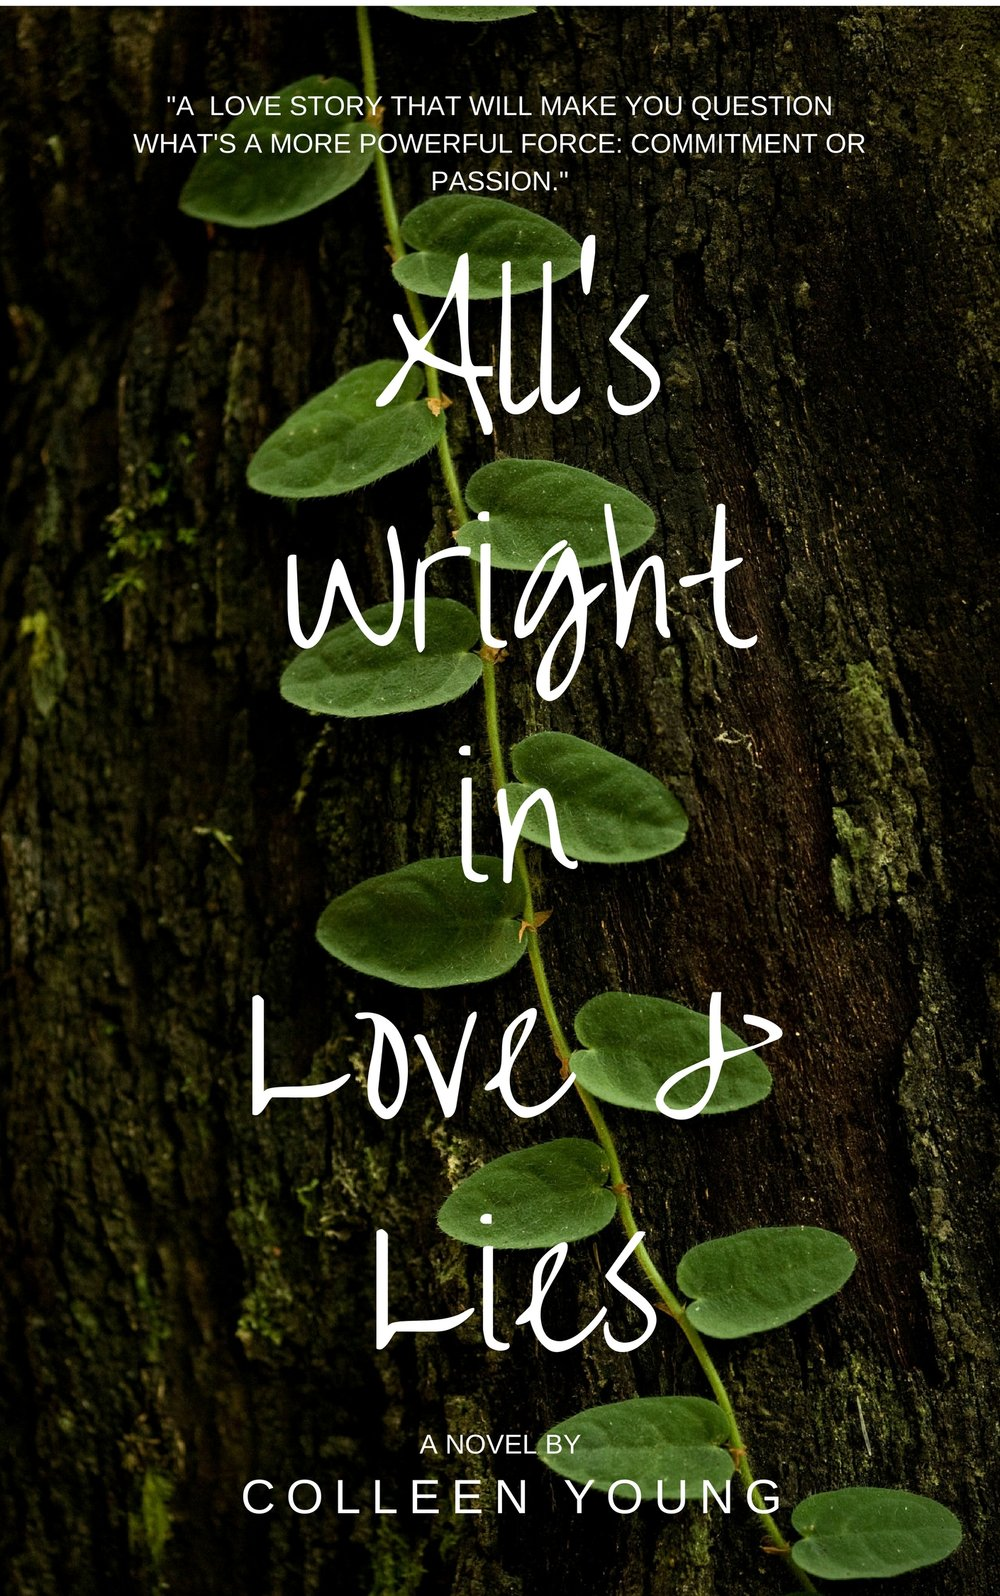 Cover Reveal - Here's the beautiful cover to All's Wright in Love & Lies! I hope you're as excited to read it as I am to share it with you. Keep checking back to find out how you can get your hands on it!